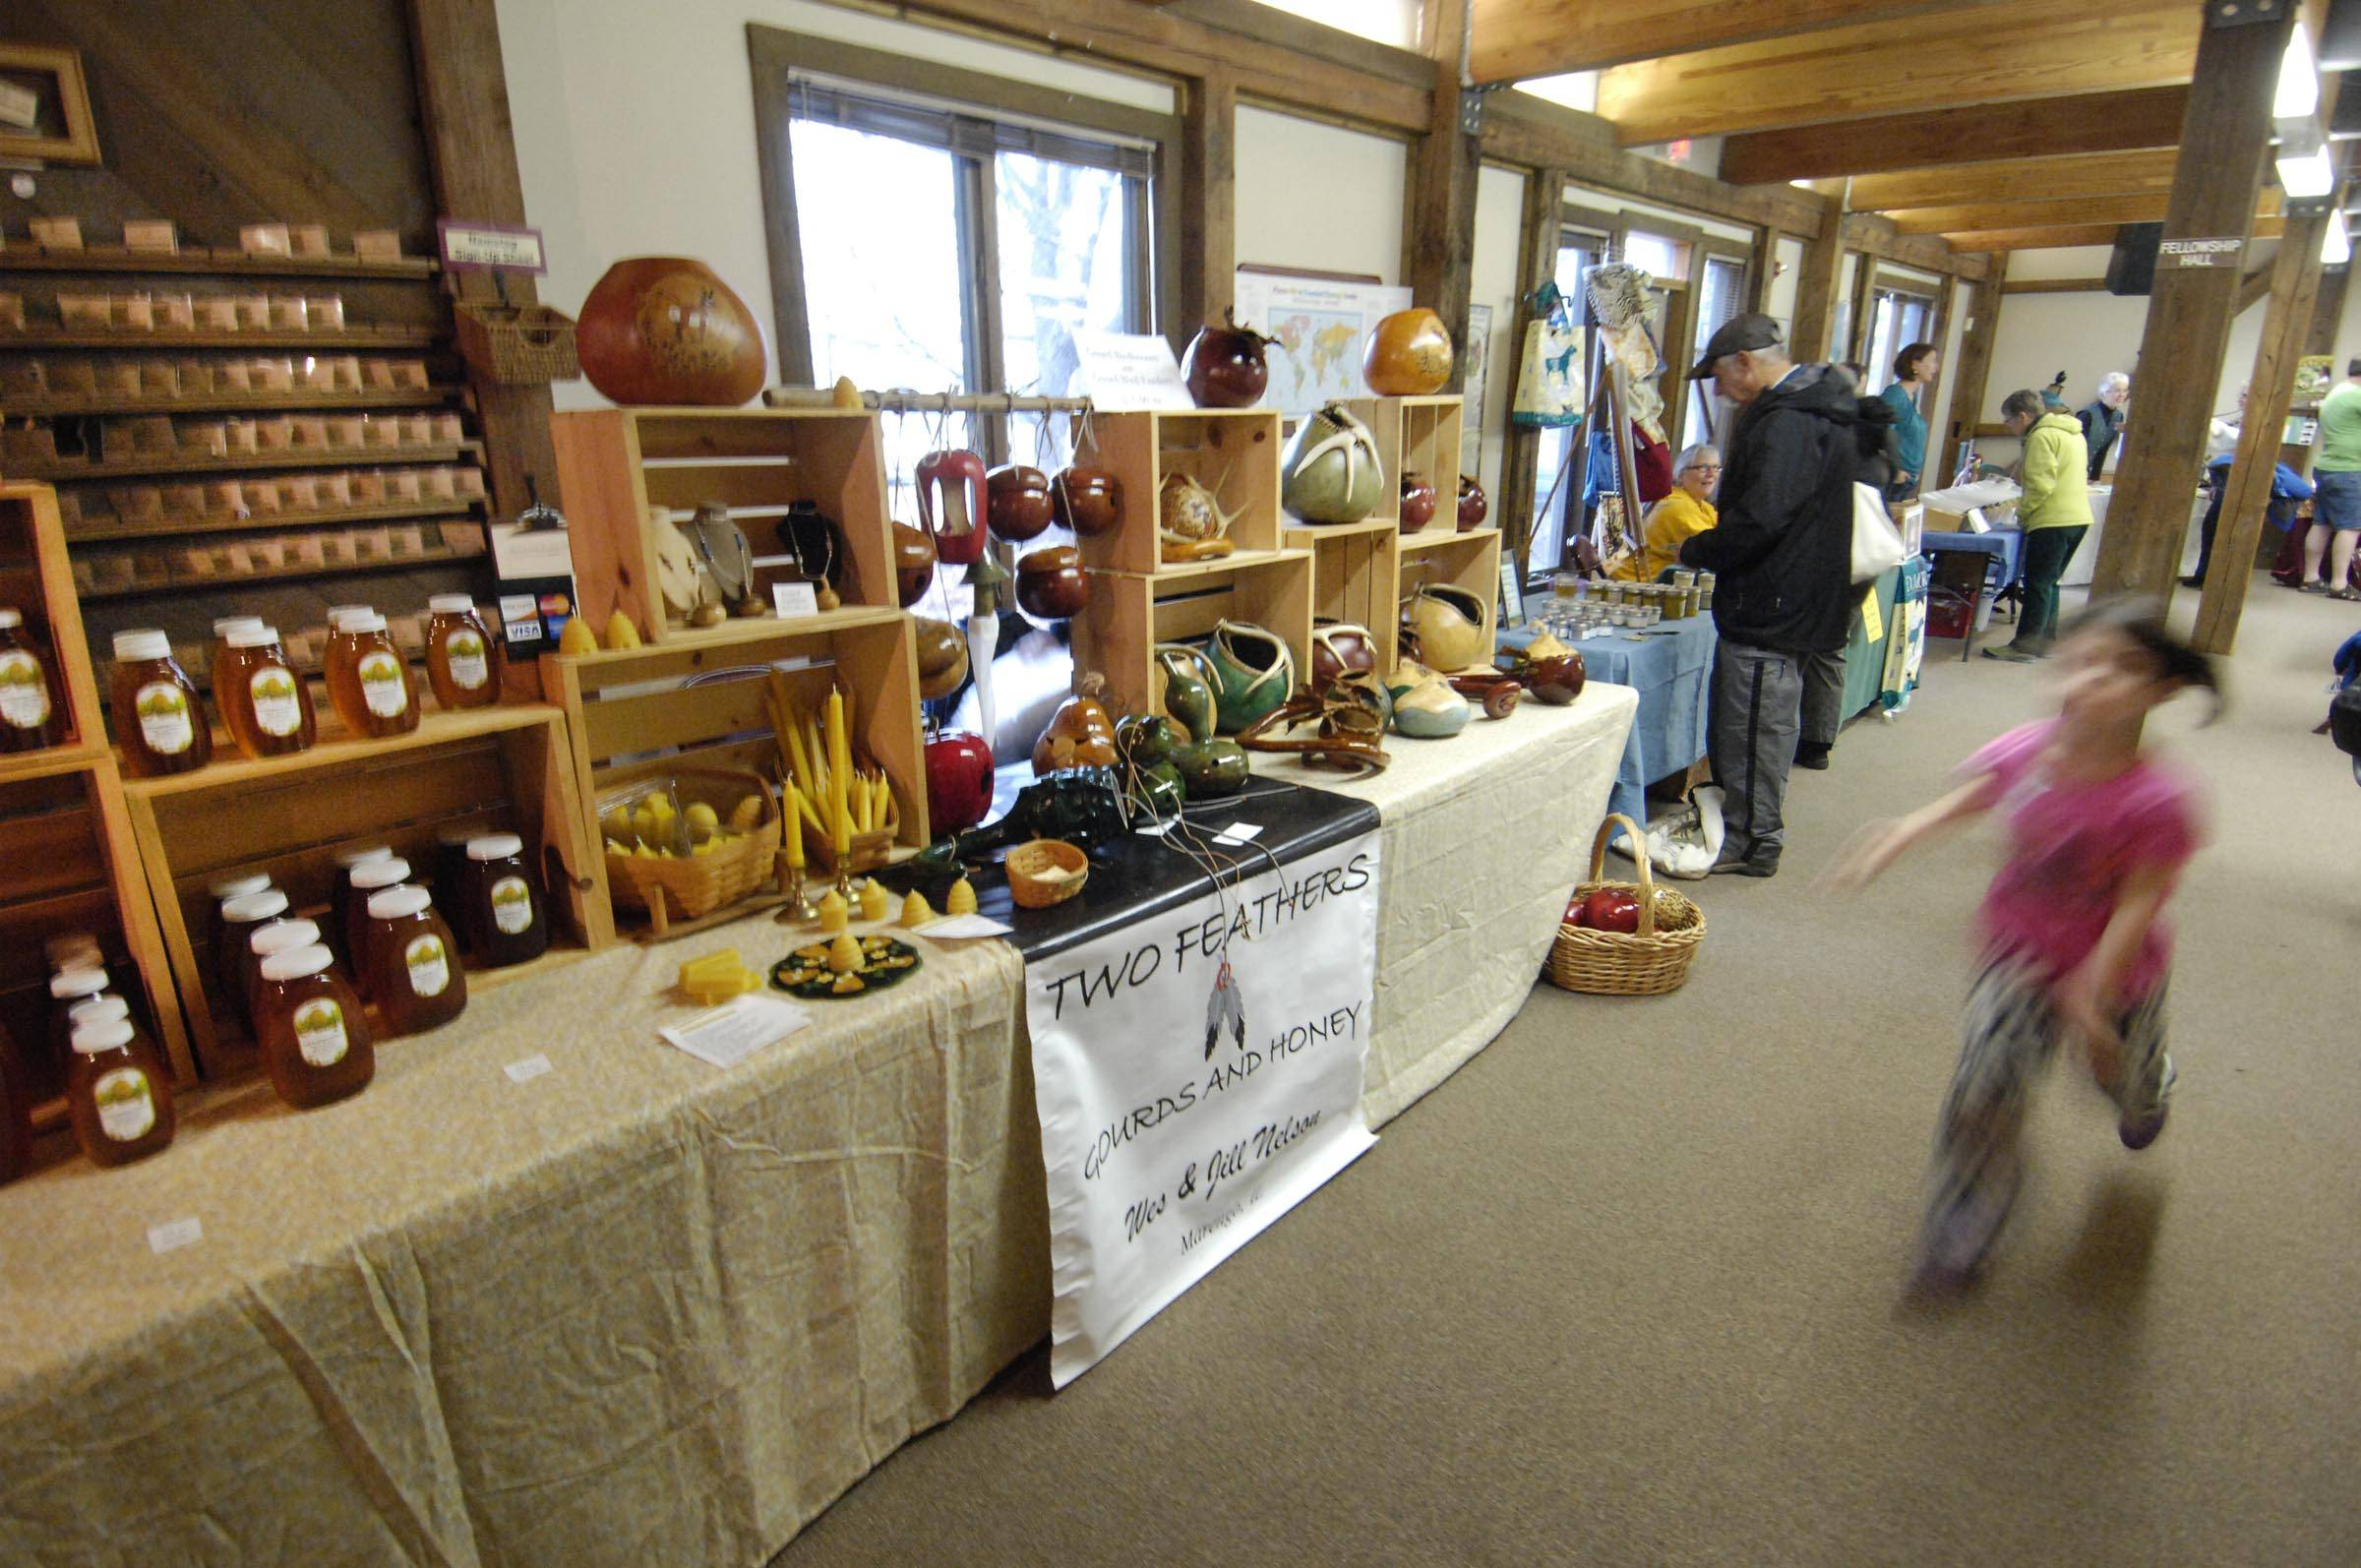 A child runs past the Two Feathers Gourds and Honey booth at a farmers market featuring sustainably produced foods and other items held Sunday at the Unitarian Universalist Church of Elgin. Wes Nelson is a beekeeper and sells honey while his wife, Jill, grows gourds and creates bird feeders and houses with them. They are from Marengo.